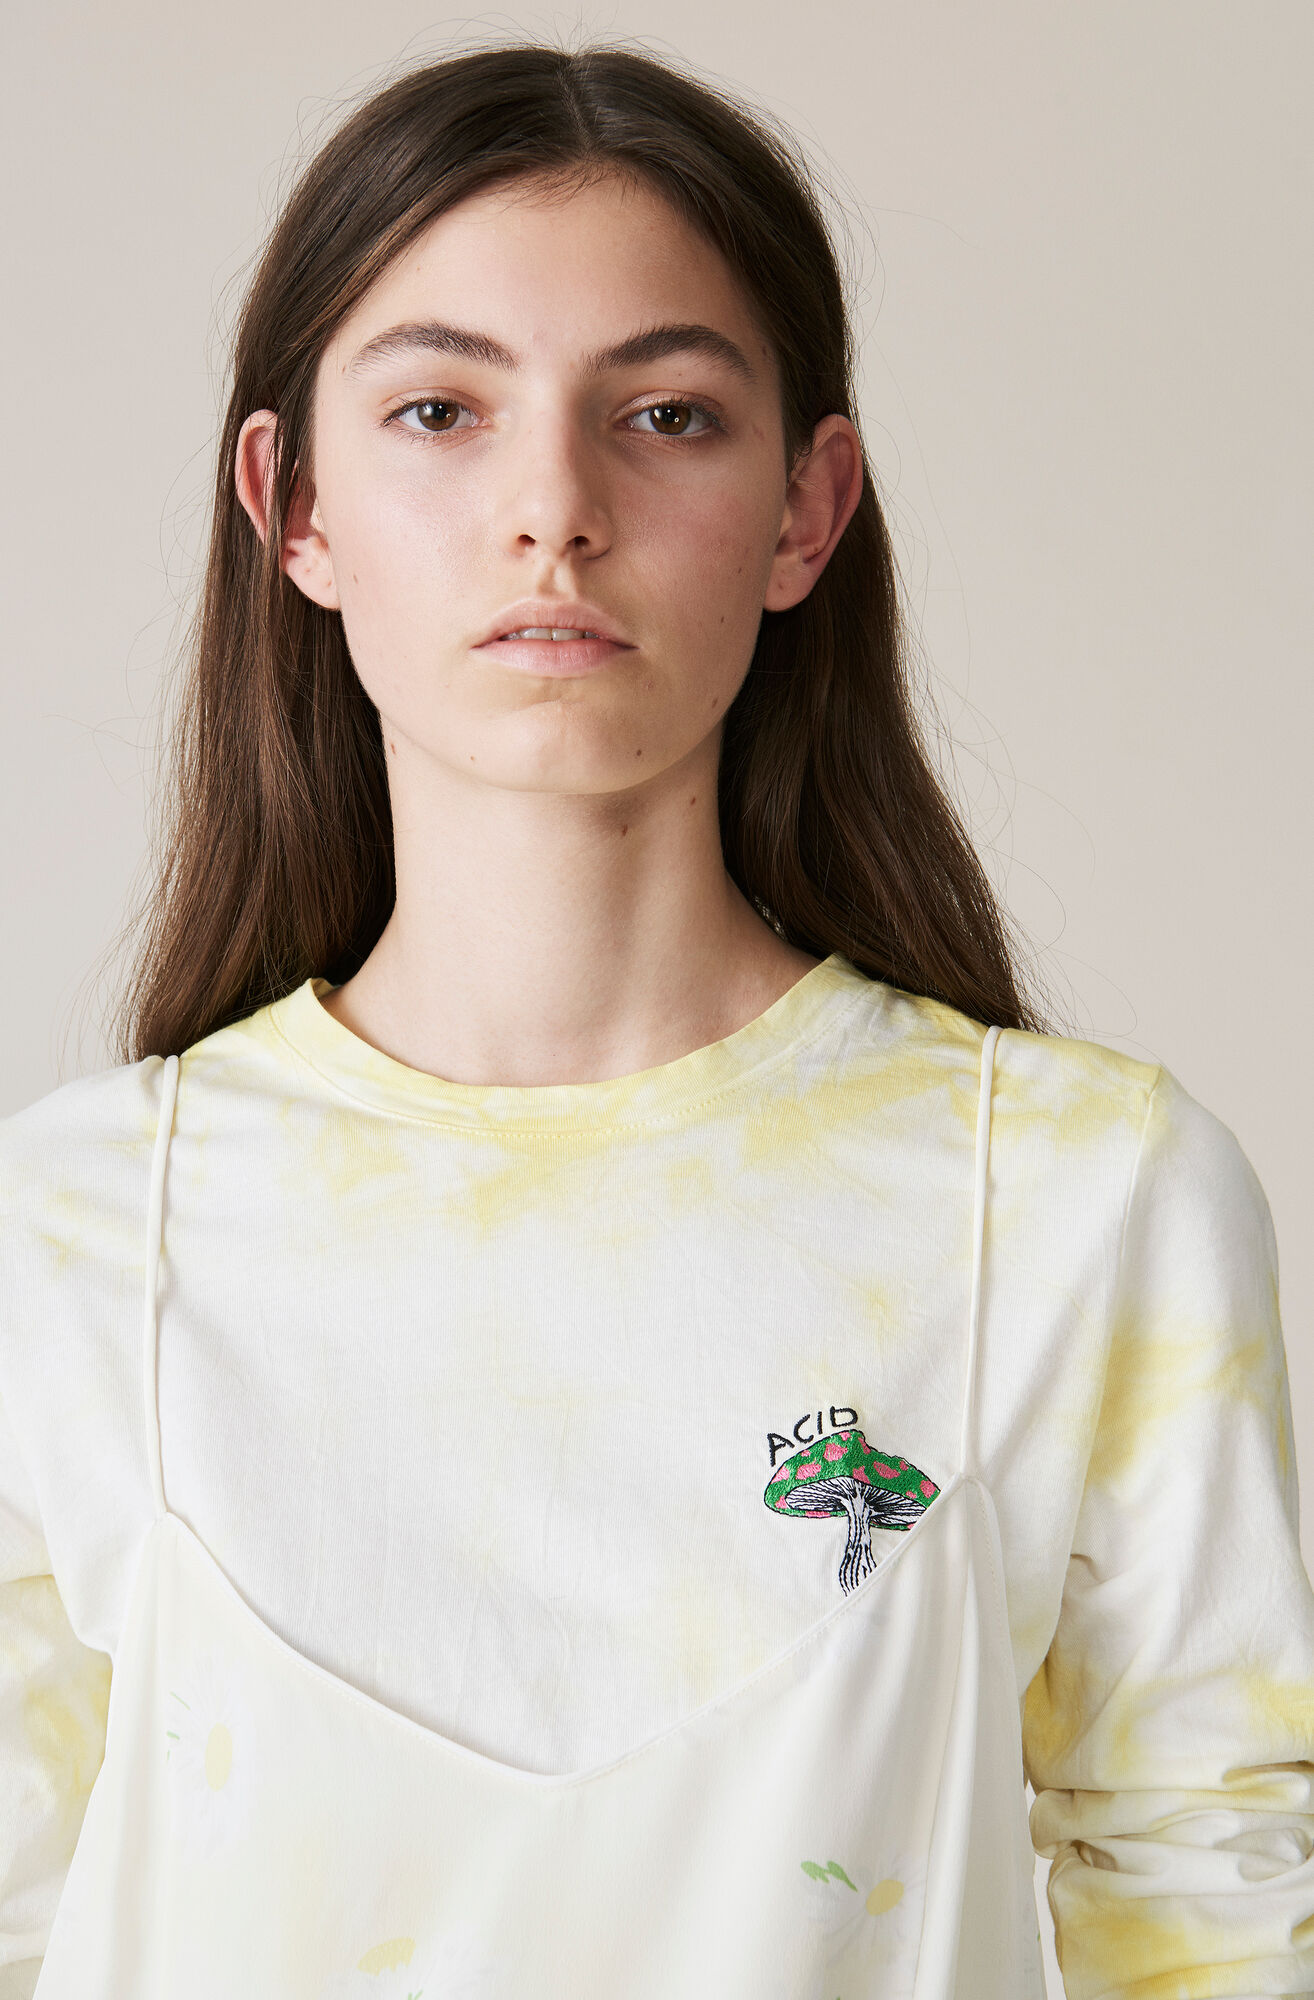 Verbena T-shirt, Acid, Anise Flower, hi-res